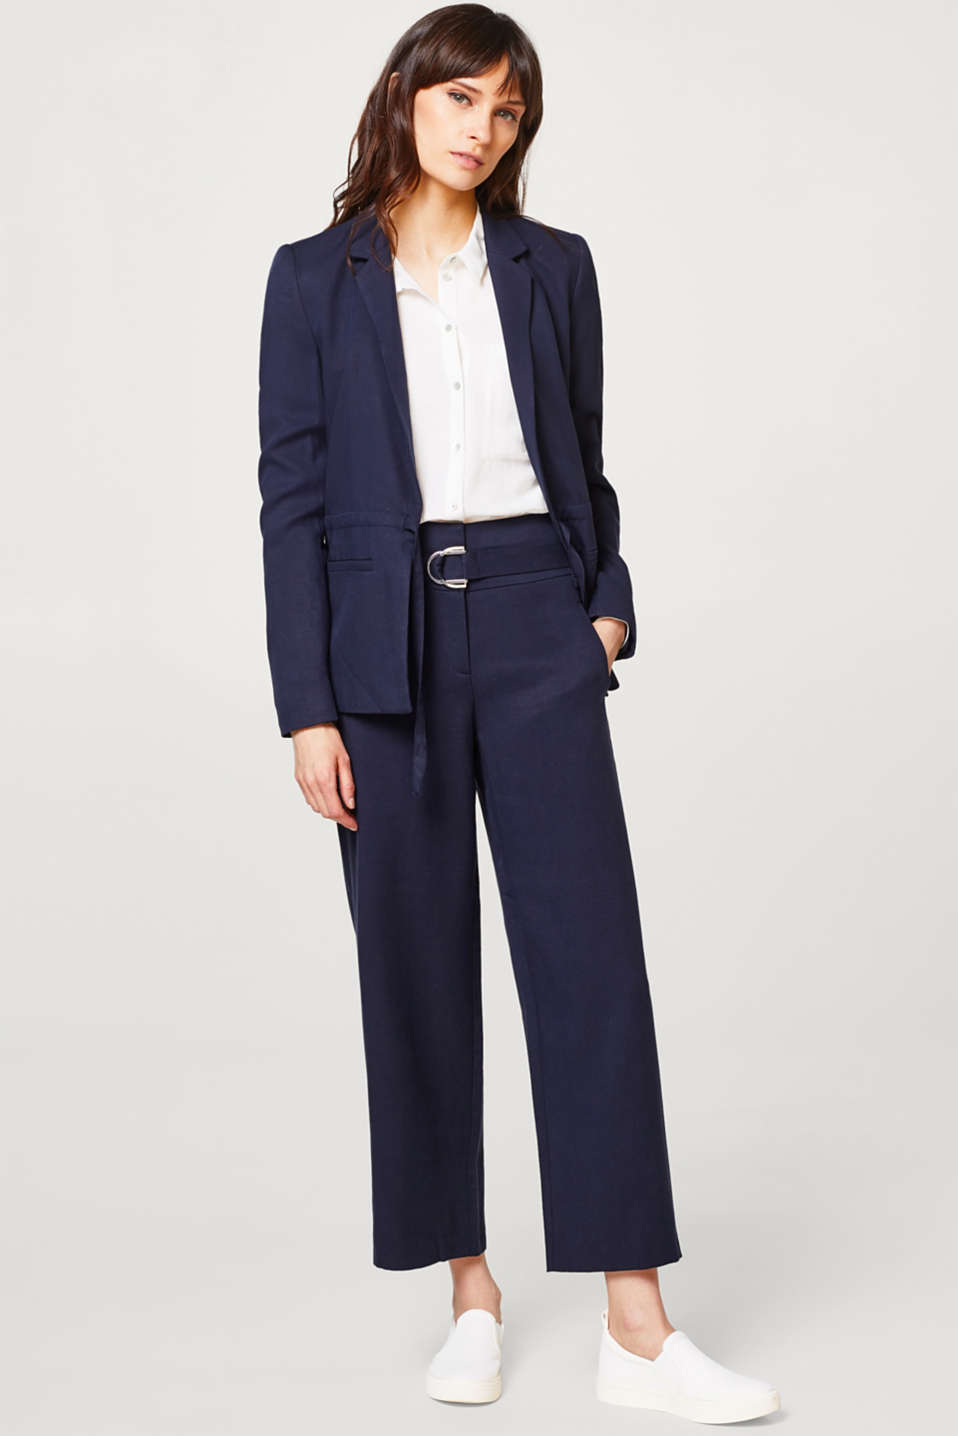 LYOCELL STRUCTURE mix + match culottes with a belt